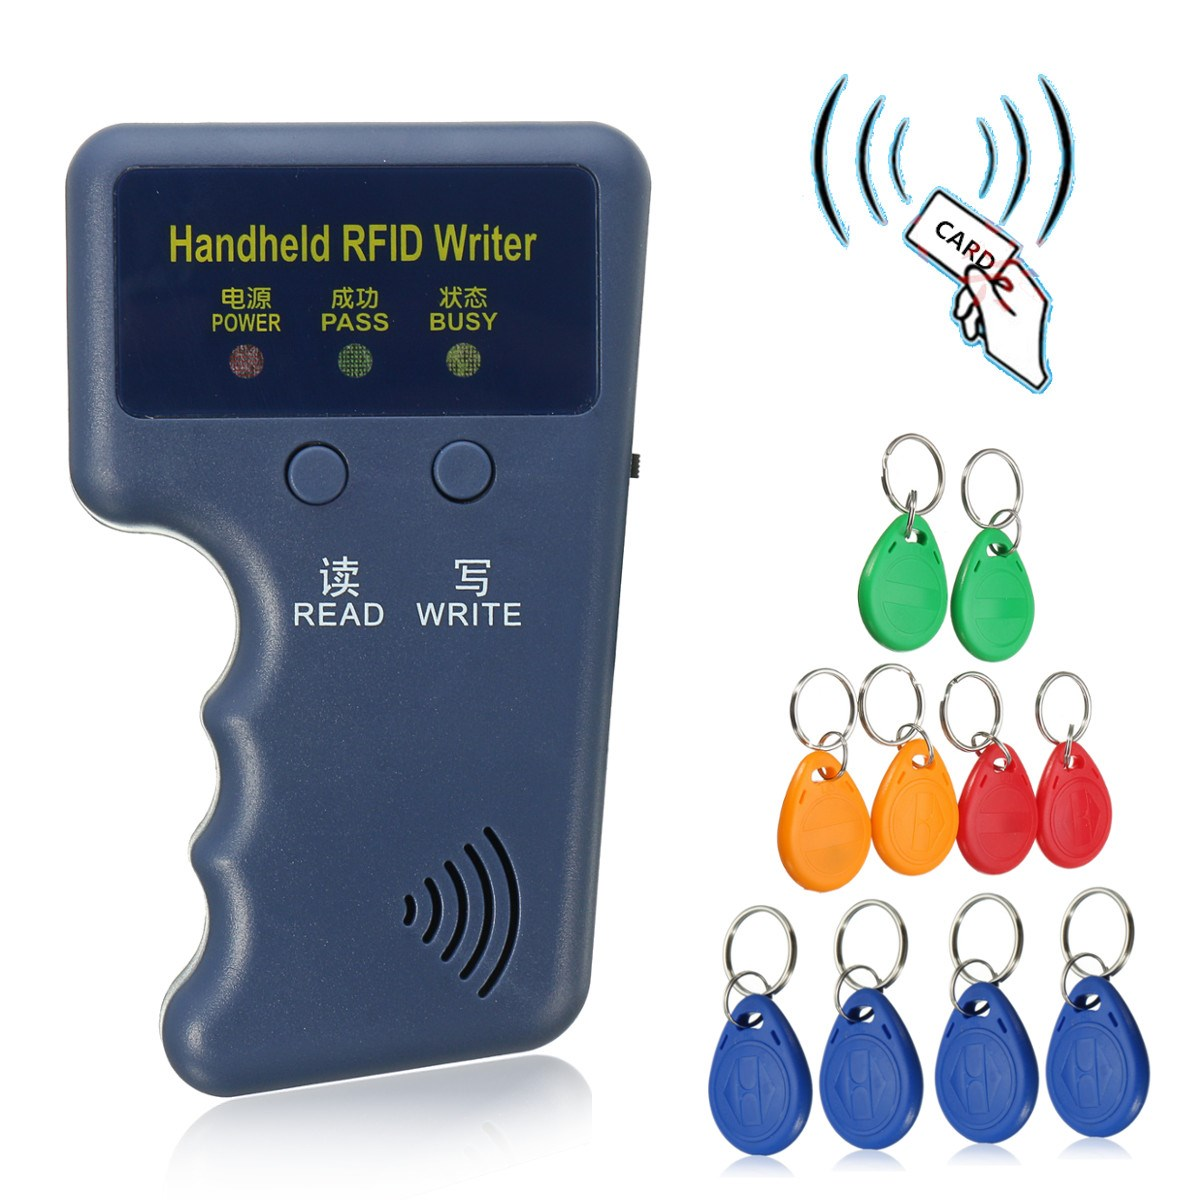 Handheld 125KHz EM4100 RFID Copier Writer Duplicator Programmer Reader + 10 Pcs EM4305 T5577 Rewritable ID Keyfobs Tags Card leshp handheld 125khz em4100 rfid copier writer duplicator programmer reader 20000 times writer for em4305 t5577 cet5200 en4305